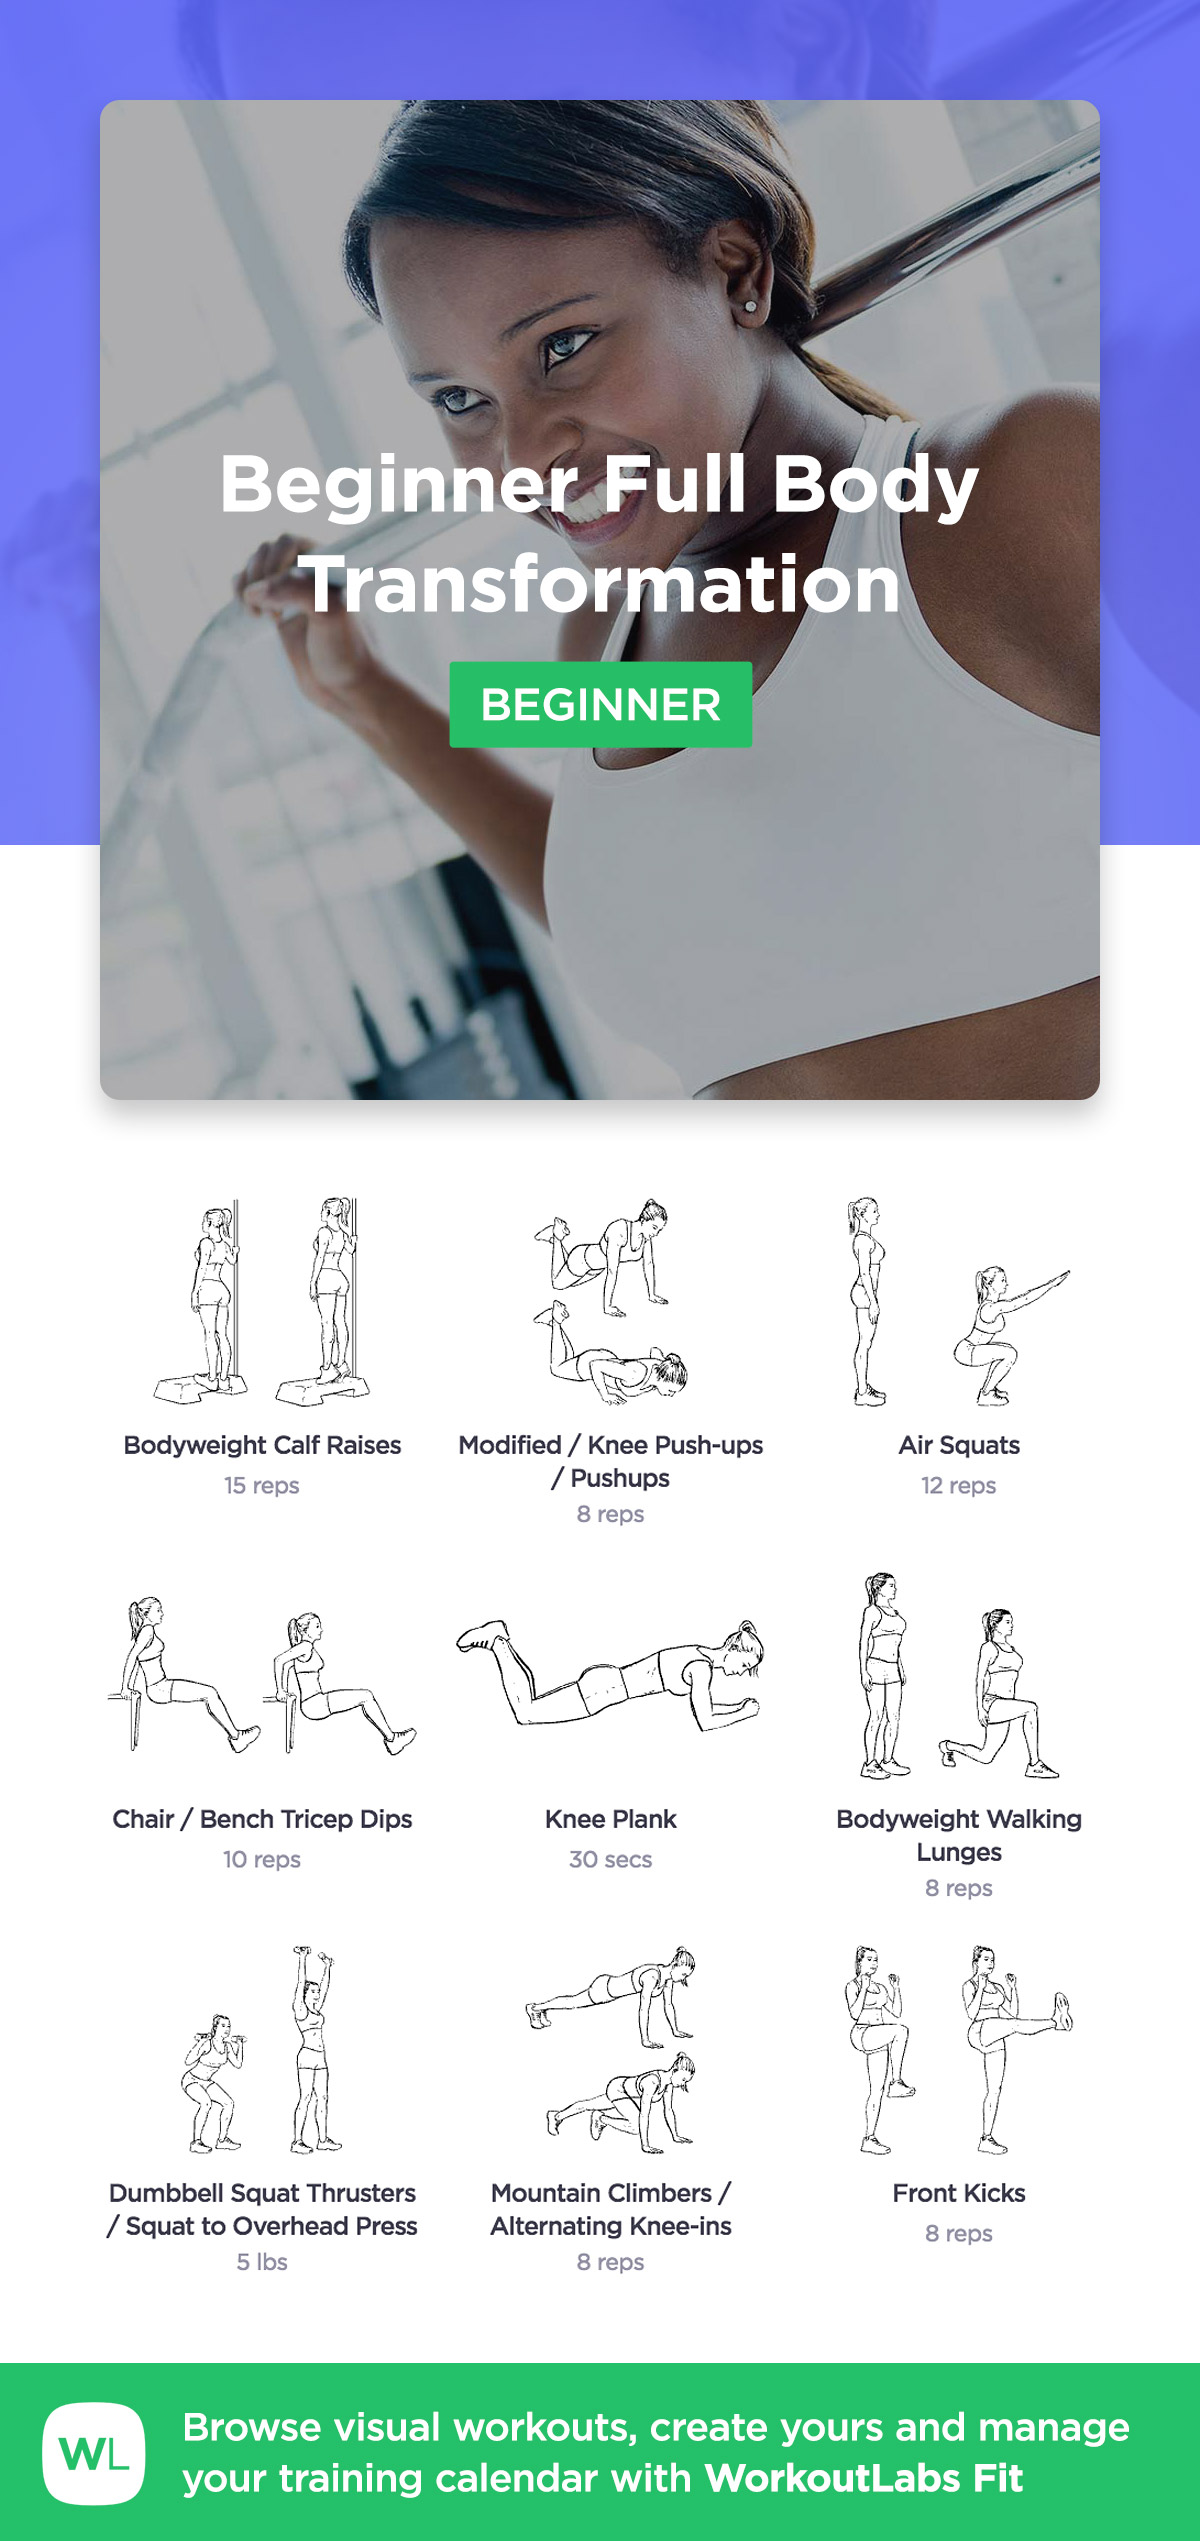 More Workouts Por Beginner Full Body Transformation